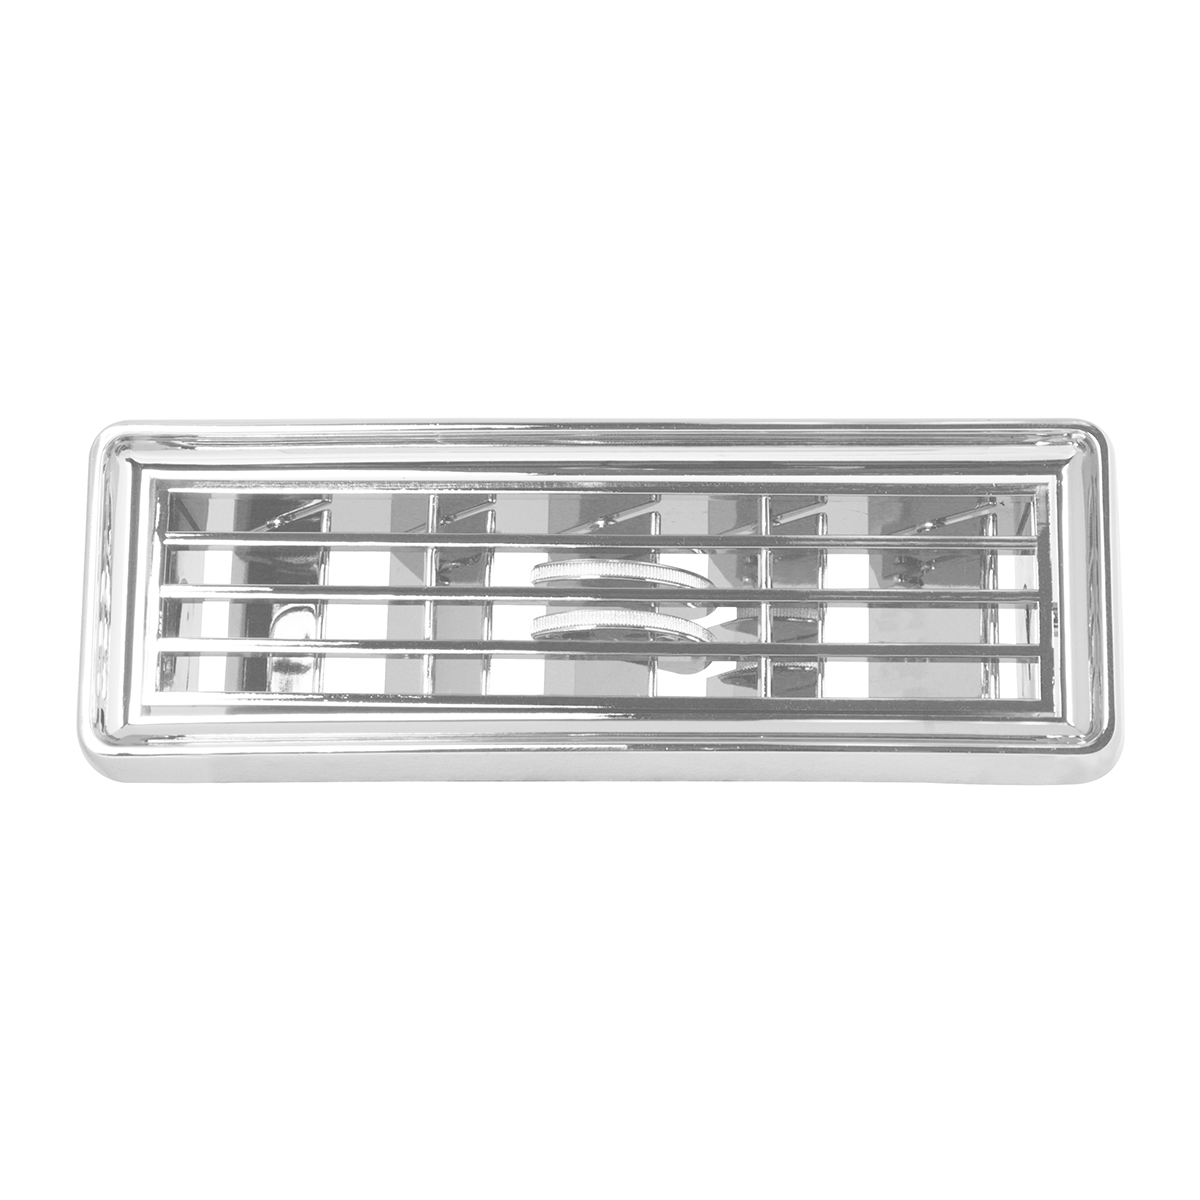 68427 A/C & Heater Vent for International